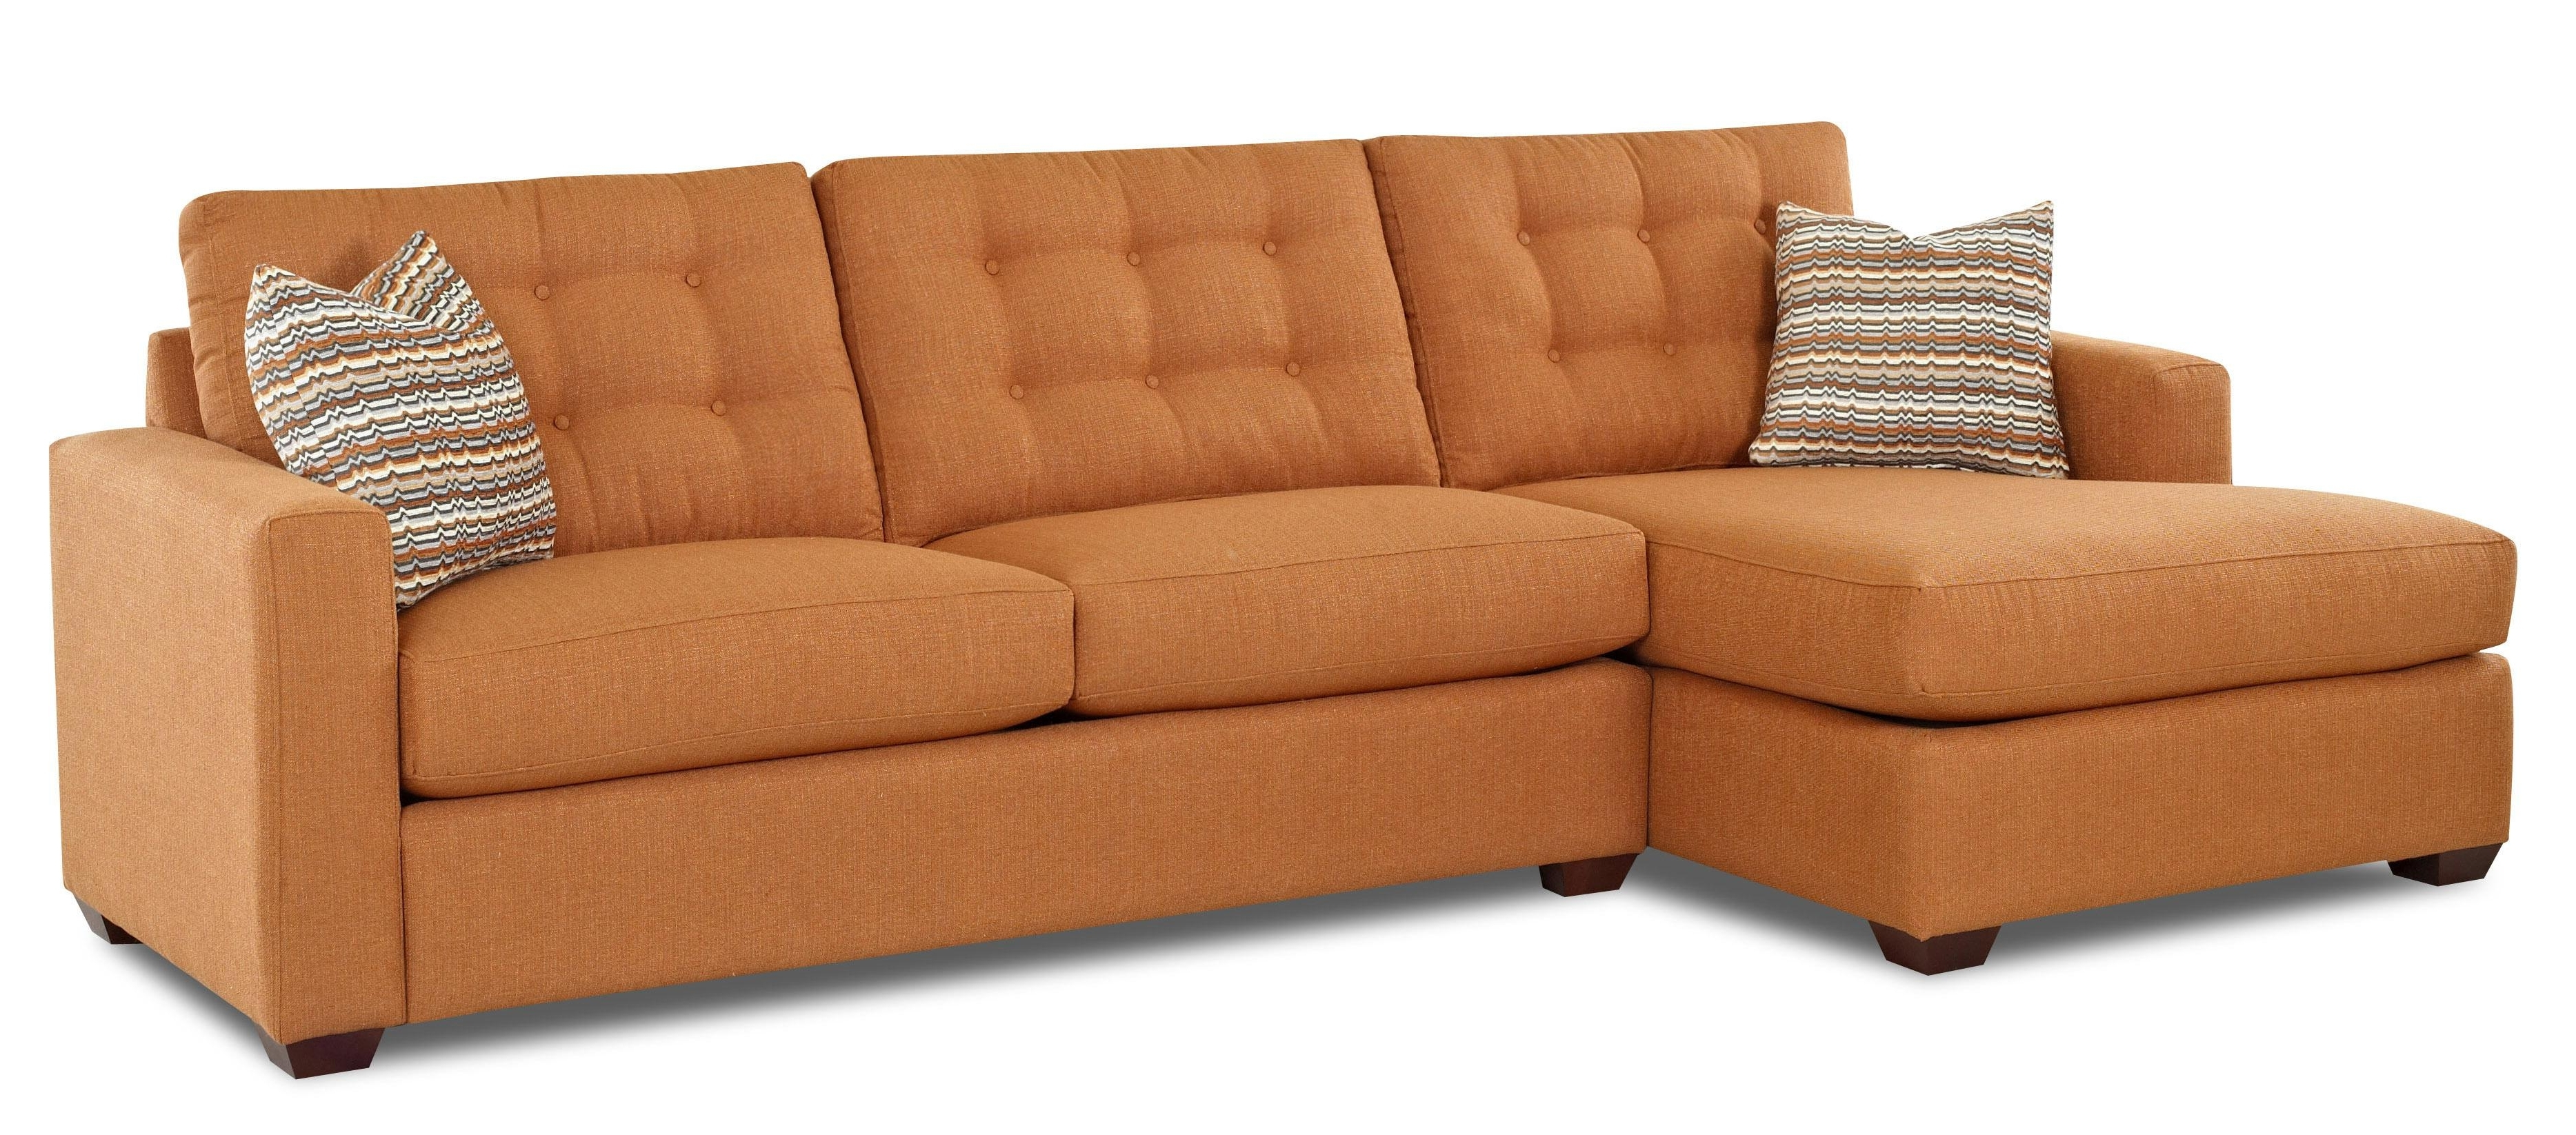 Fashionable Design Of Chaise Lounge Sectional With Contemporary Sectional Sofa With Chaise Lounge Sectional Sofas (View 9 of 15)